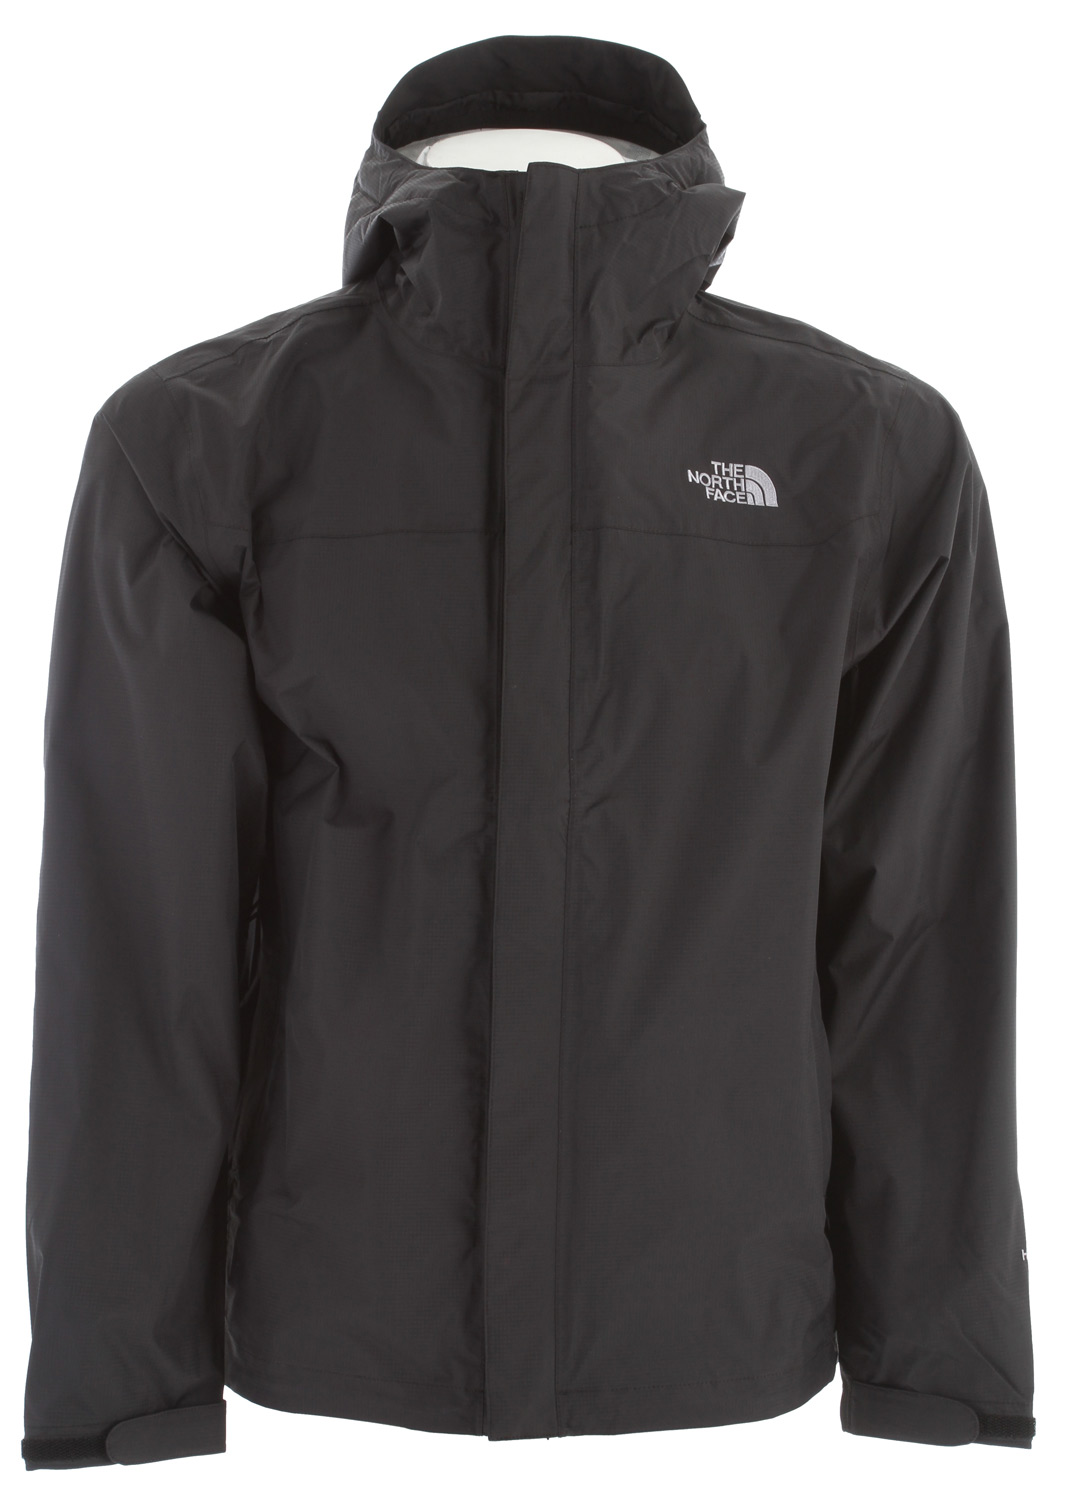 Classic, year-round rainwear, now constructed with HyVent 2.5L EC fabric, an eco-conscious material; our most popular waterproof, breathable jacket. Key Features of The North Face Venture Jacket: Standard fit Waterproof, breathable, seam sealed Attached, fully adjustable hood with hidden drawcord system Center front zip and Velcro® closure Brushed chin guard lining Pit-zips Two hand pockets Stowable in hand pocket Self fabric adjustable Velcro® cuff tabs Hem cinch-cord / fabric: 40D 85 g/m (2.5 oz/yd ) 100% nylon ripstop HyVent 2.5L EC (50% non-petroleum membrane) - $99.00